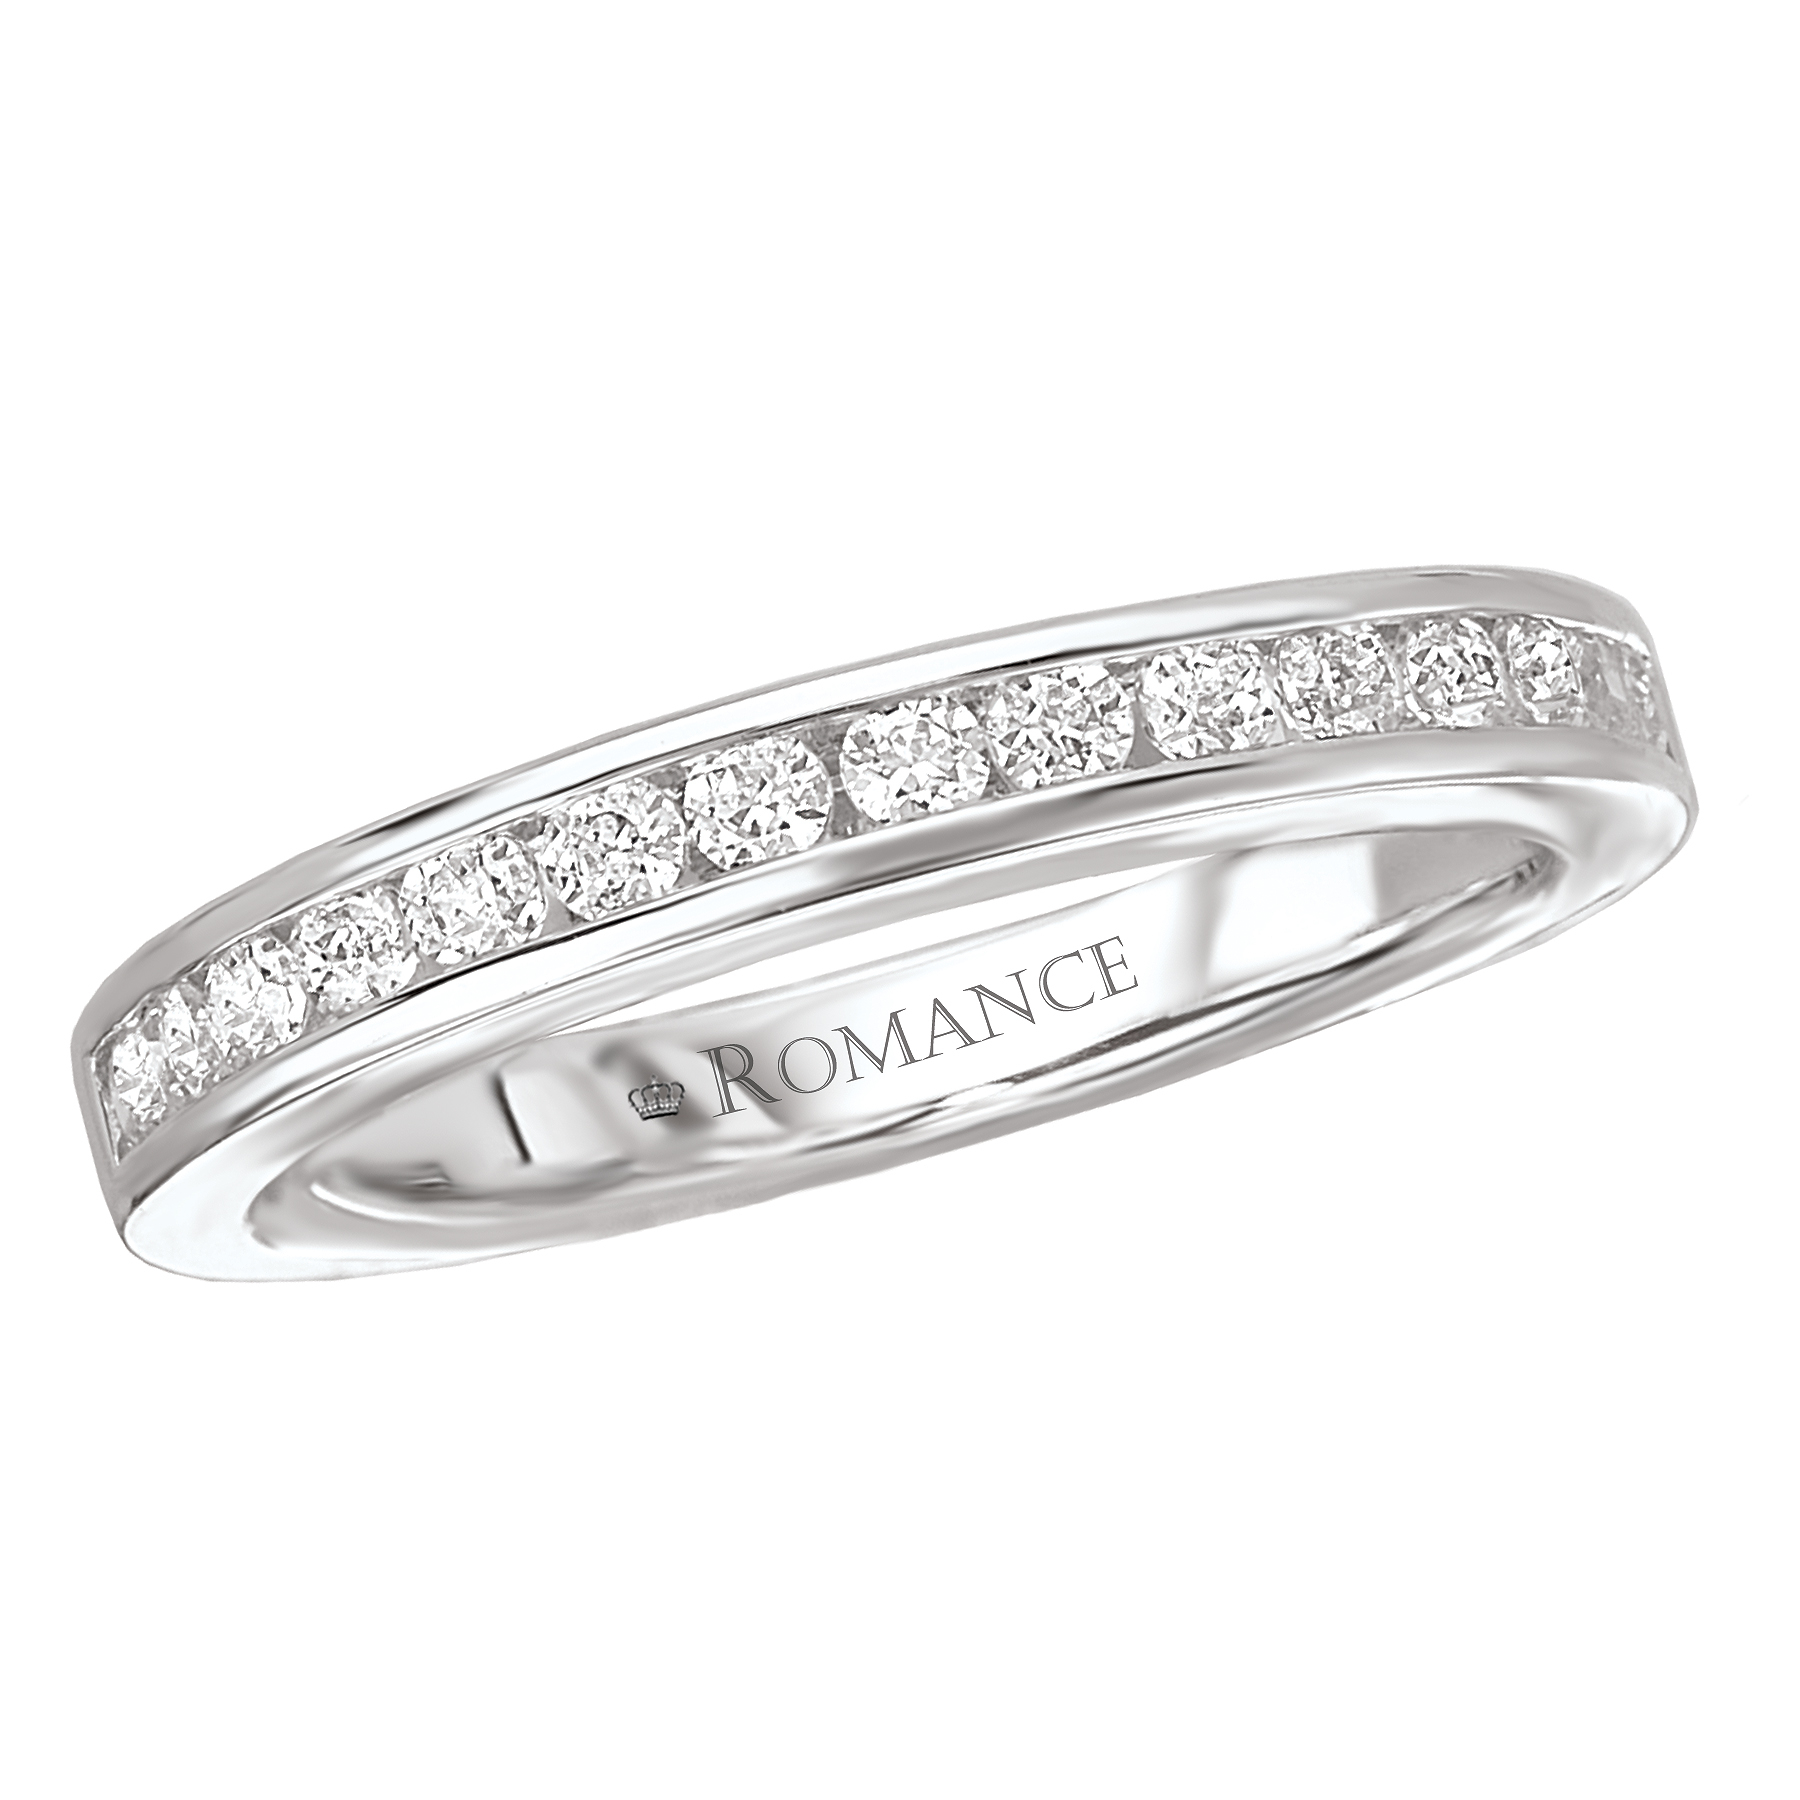 Romance Wedding Bands 117282-W product image